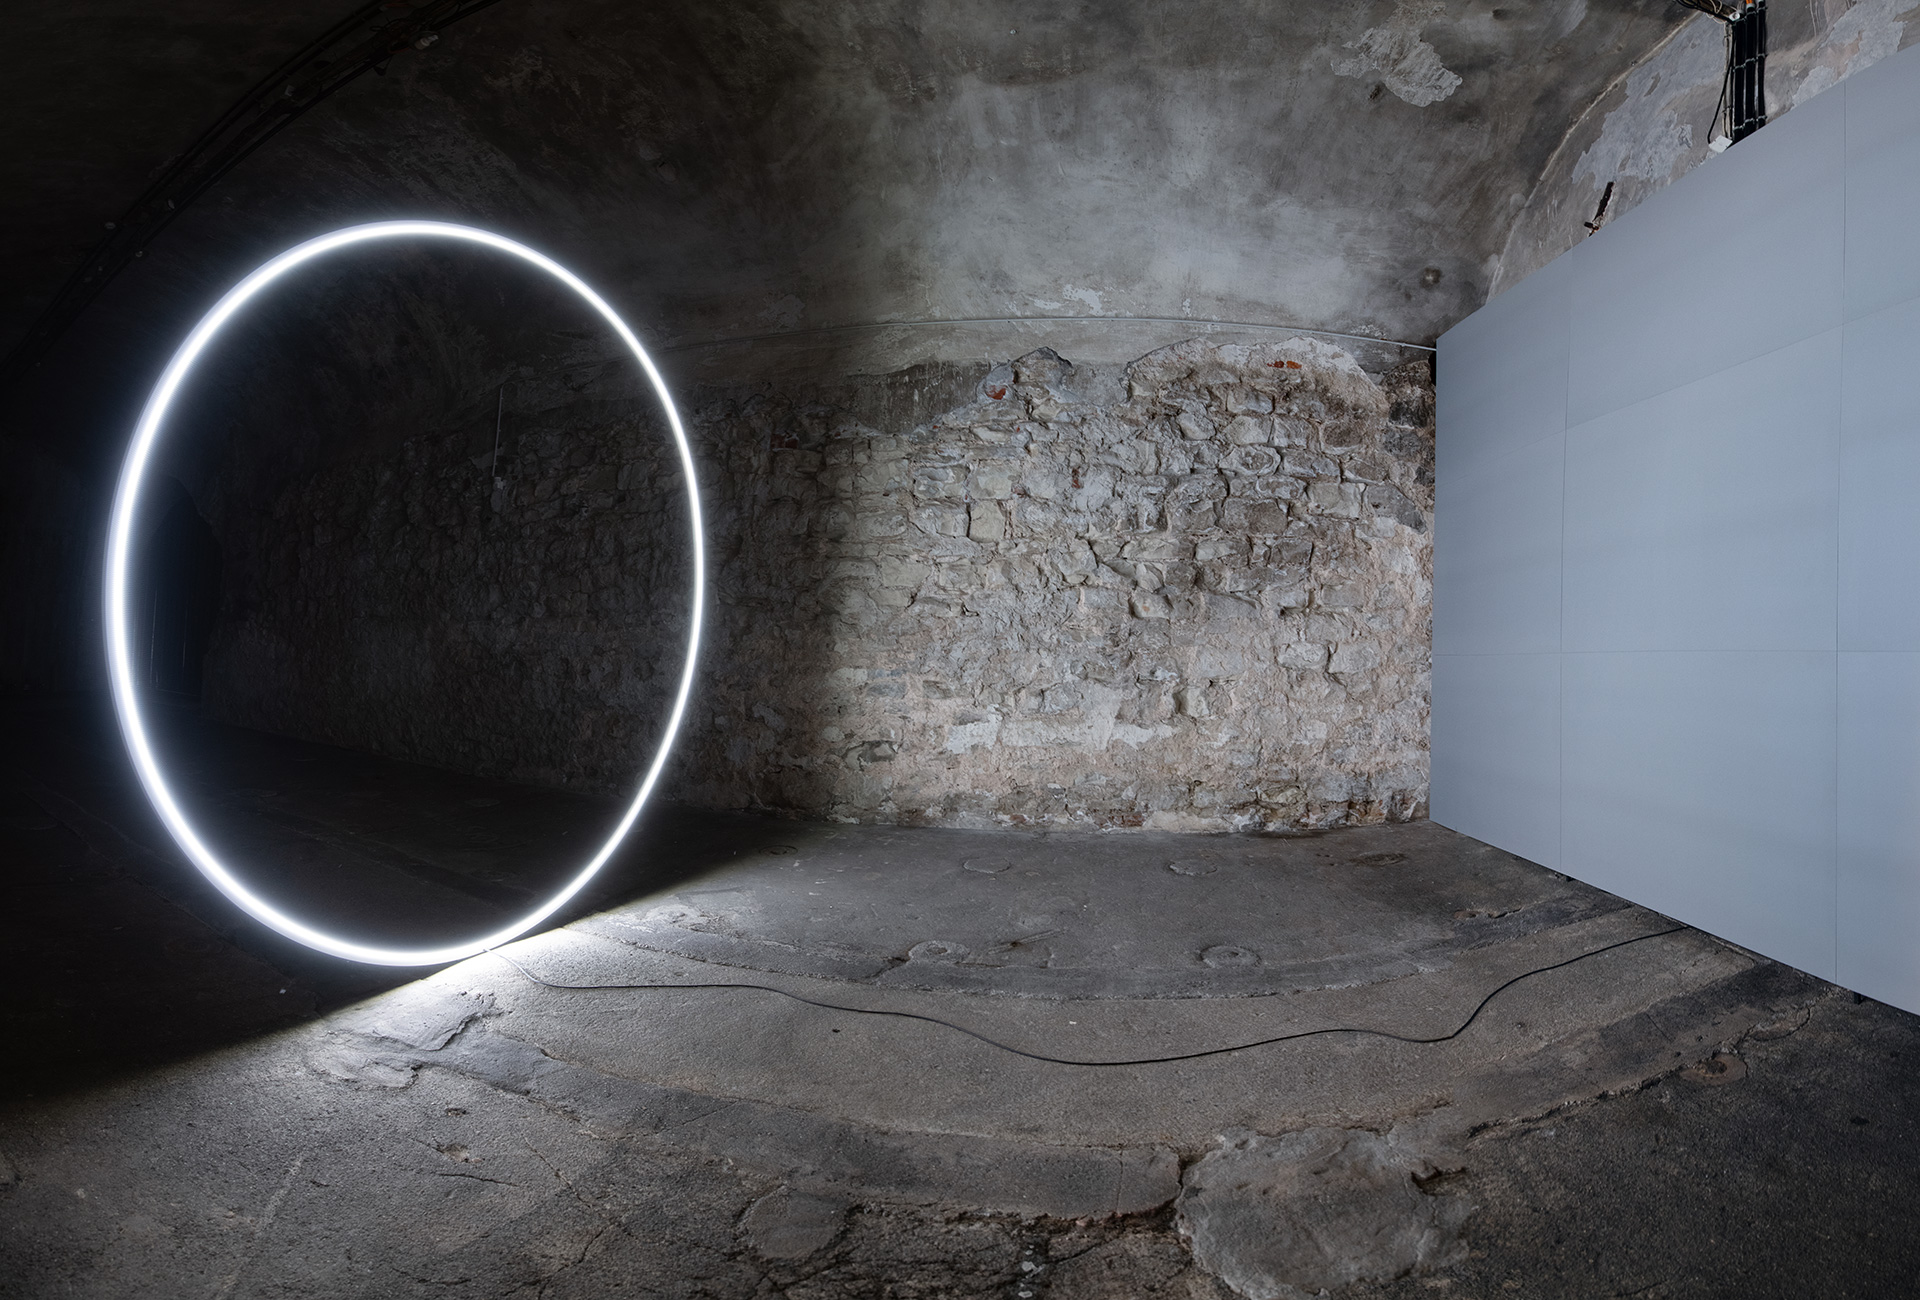 Dachroth + Jeschonnek filled the museum's vaulted cellar by a Negative Space of Light – a black hole in its own right | International Light Art Award 2019 | Dachroth + Jeschonnek | STIRworld